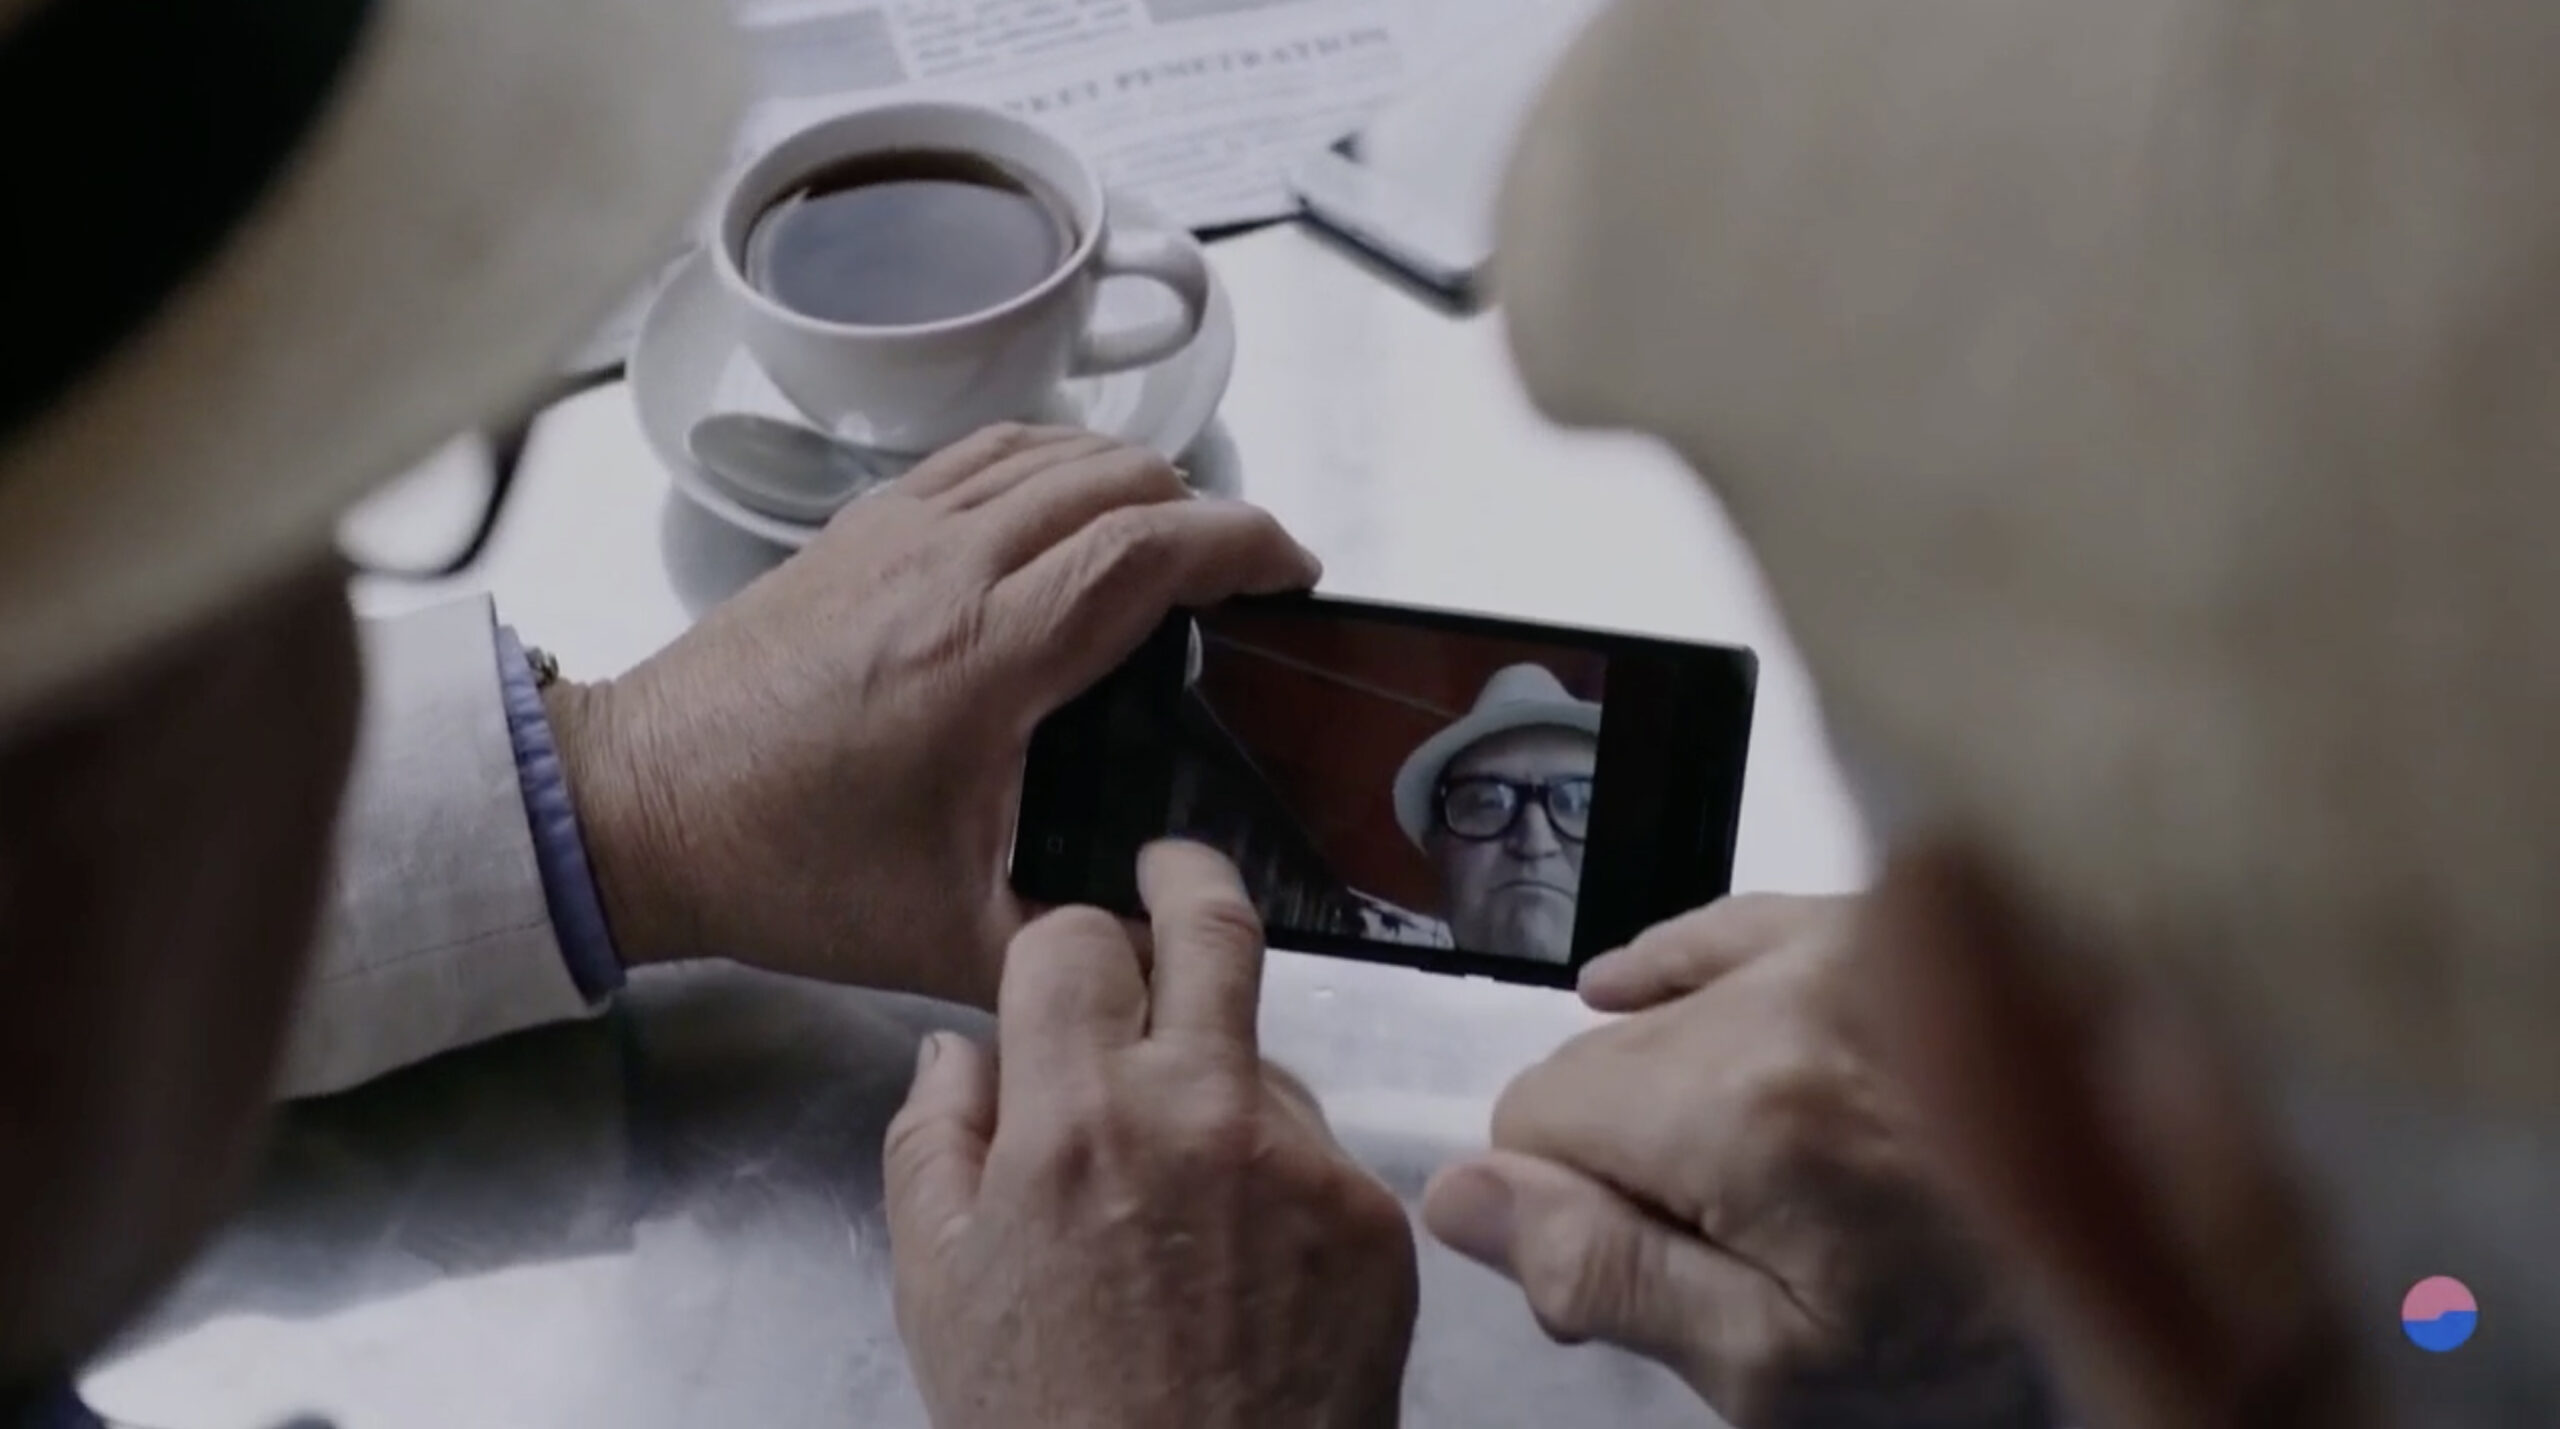 Two senior citizens video calling on cellphone